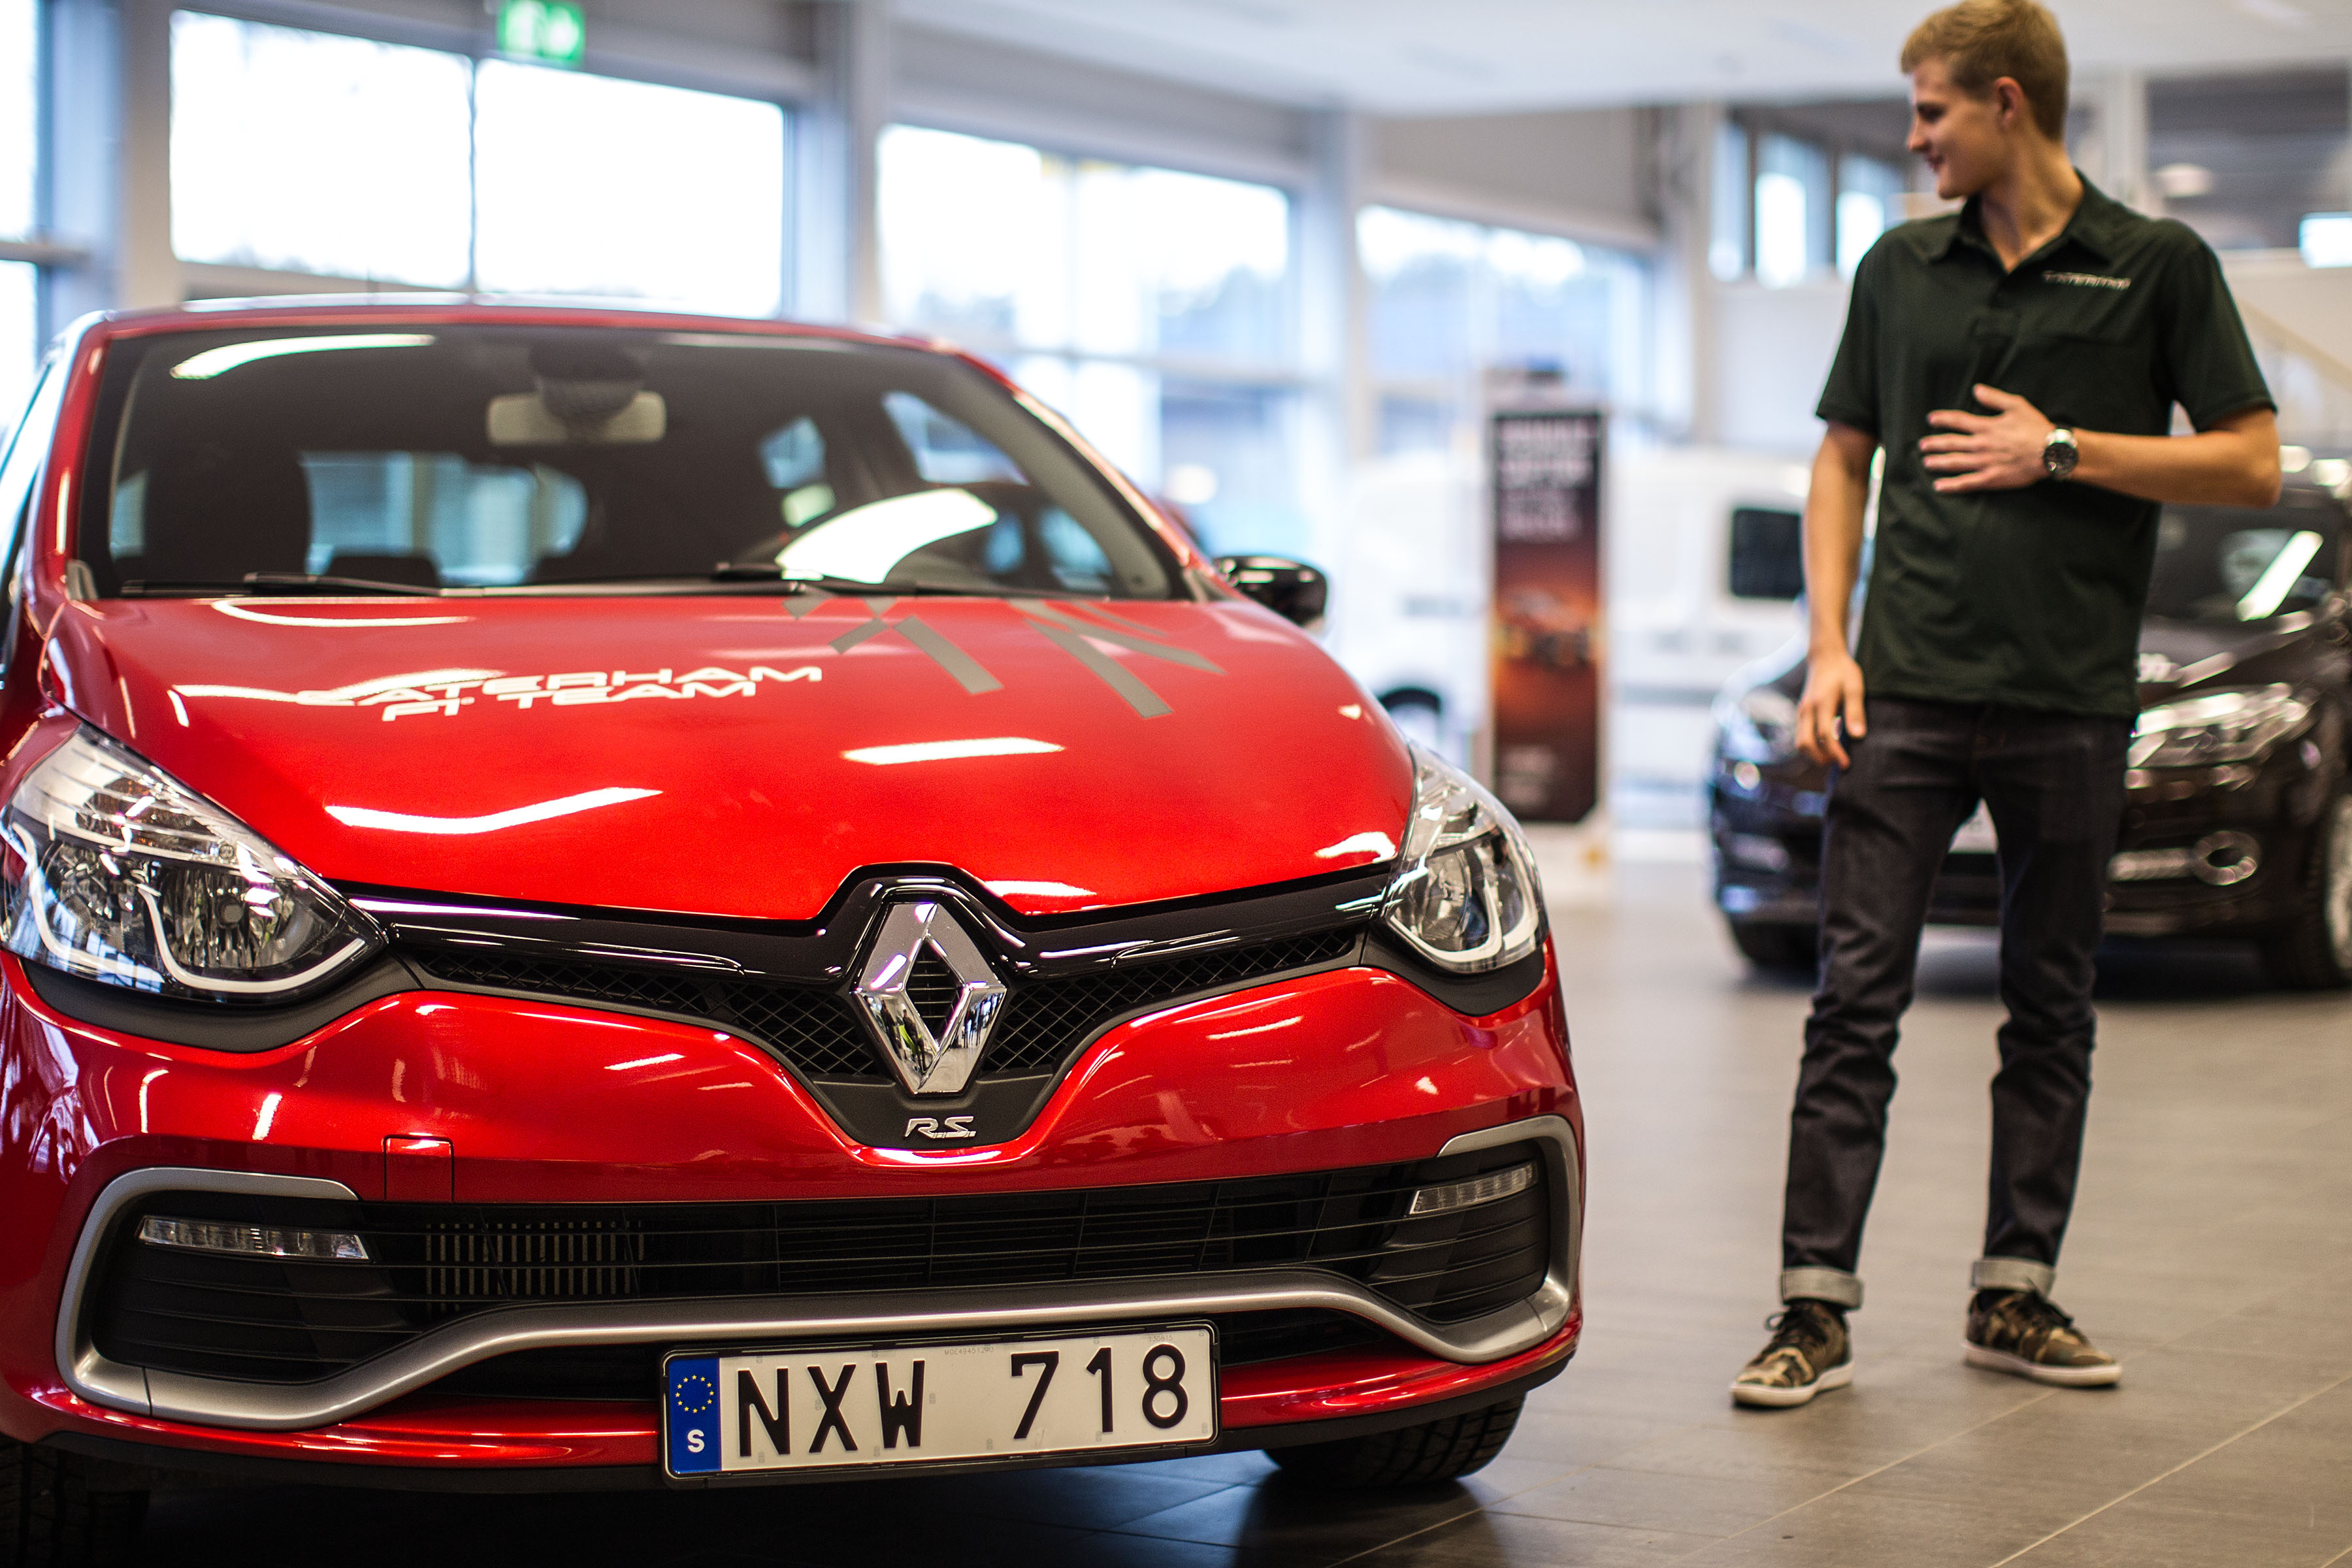 File Marcus Ericsson Test Drives A Renault Clio Rs 2014 001 Jpg Wikimedia Commons